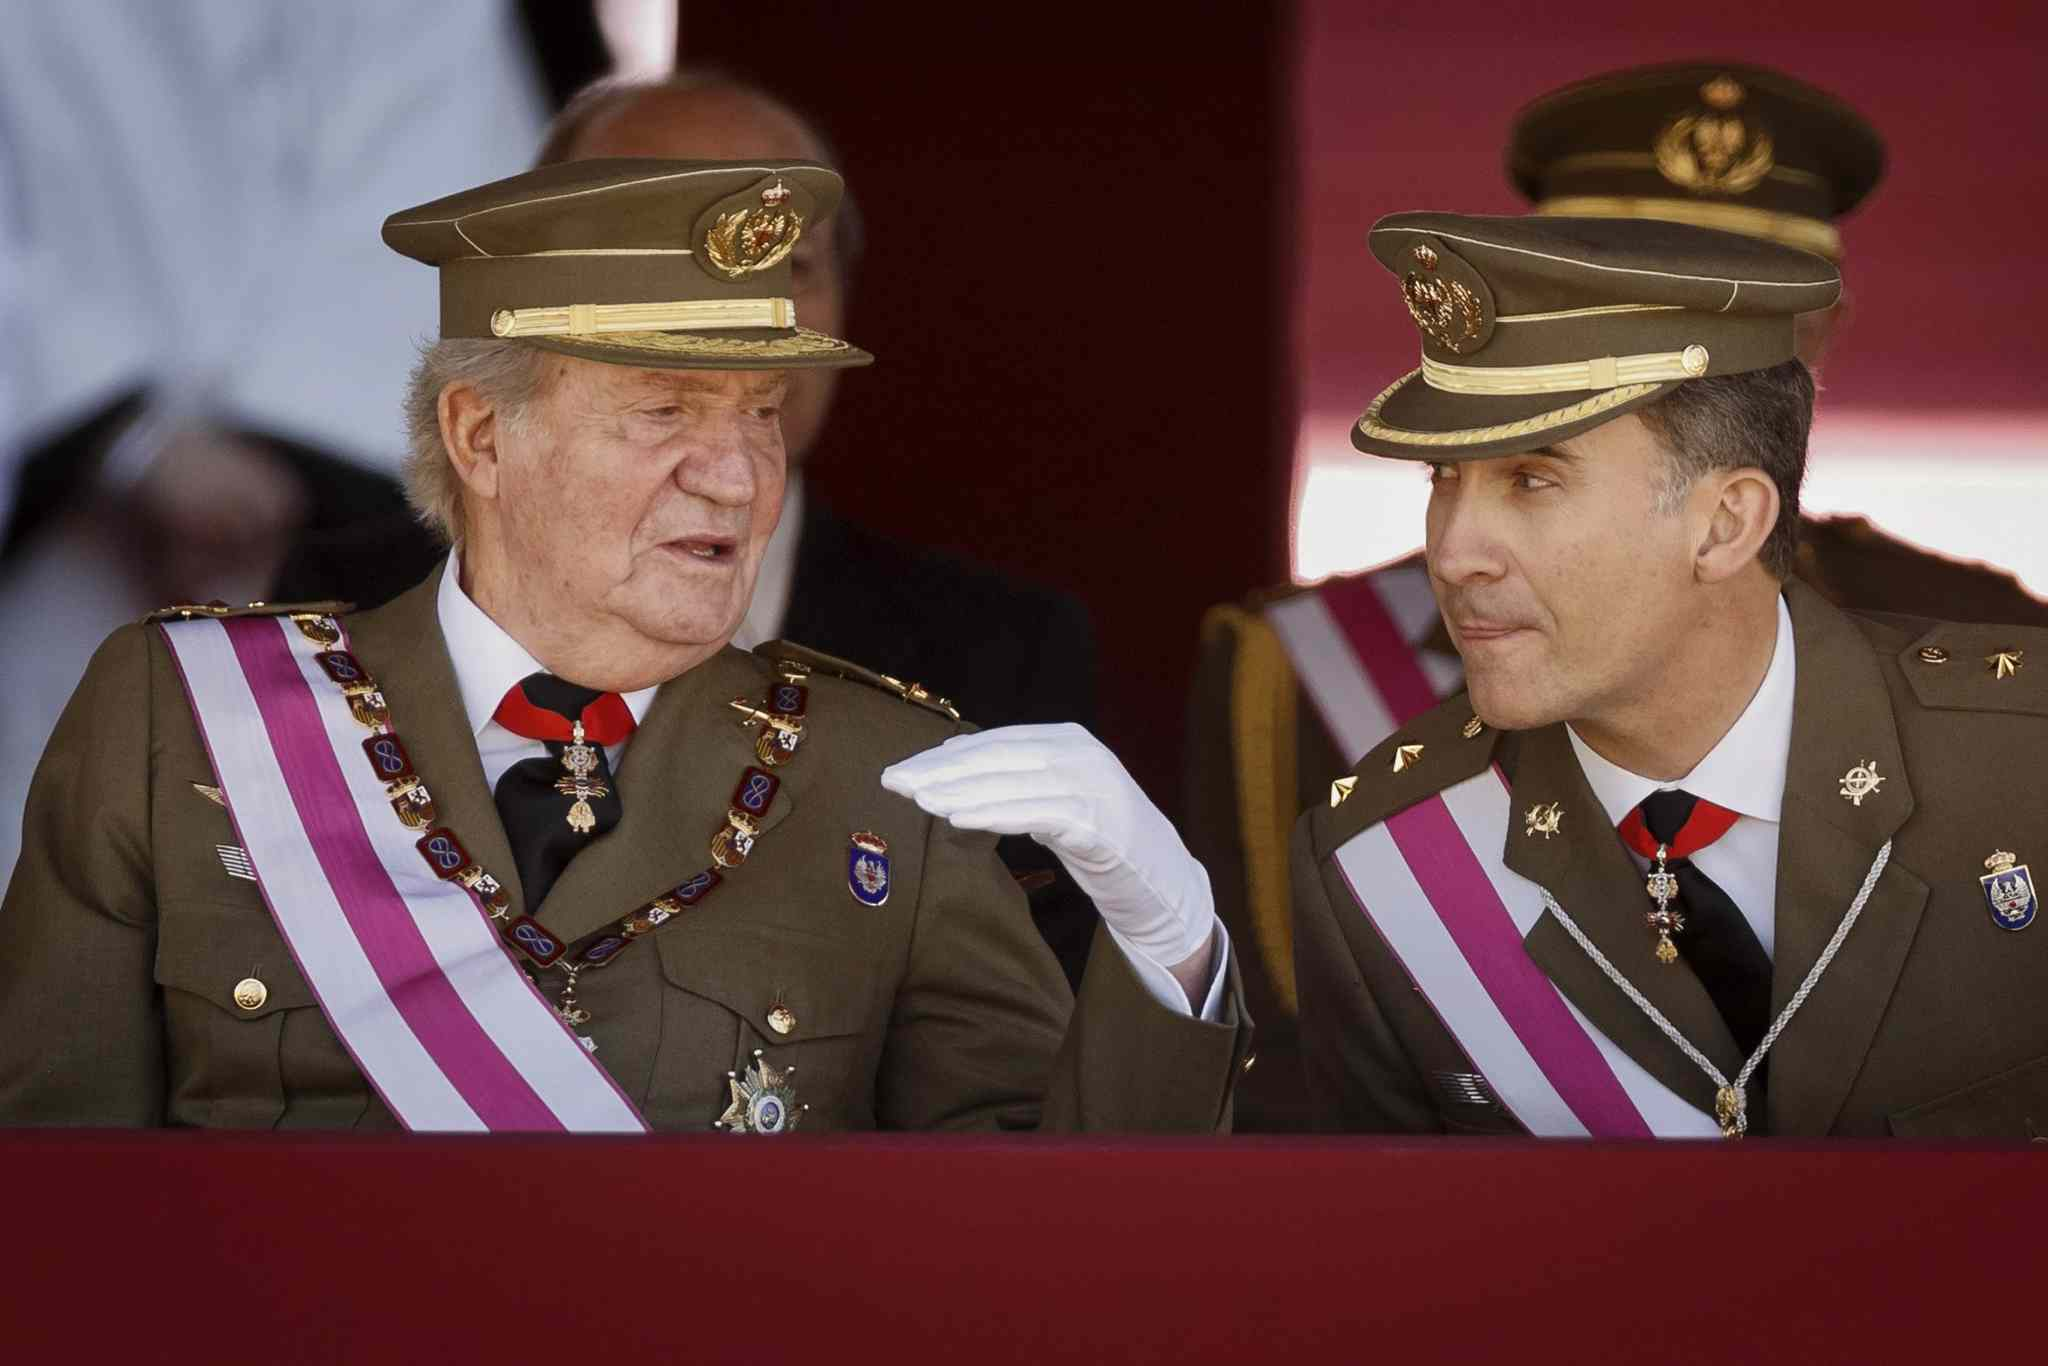 King Juan Carlos and Crown Prince Felipe, right, attend a military ceremony in San Lorenzo de El Escorial, outside Madrid, Spain, Tuesday.